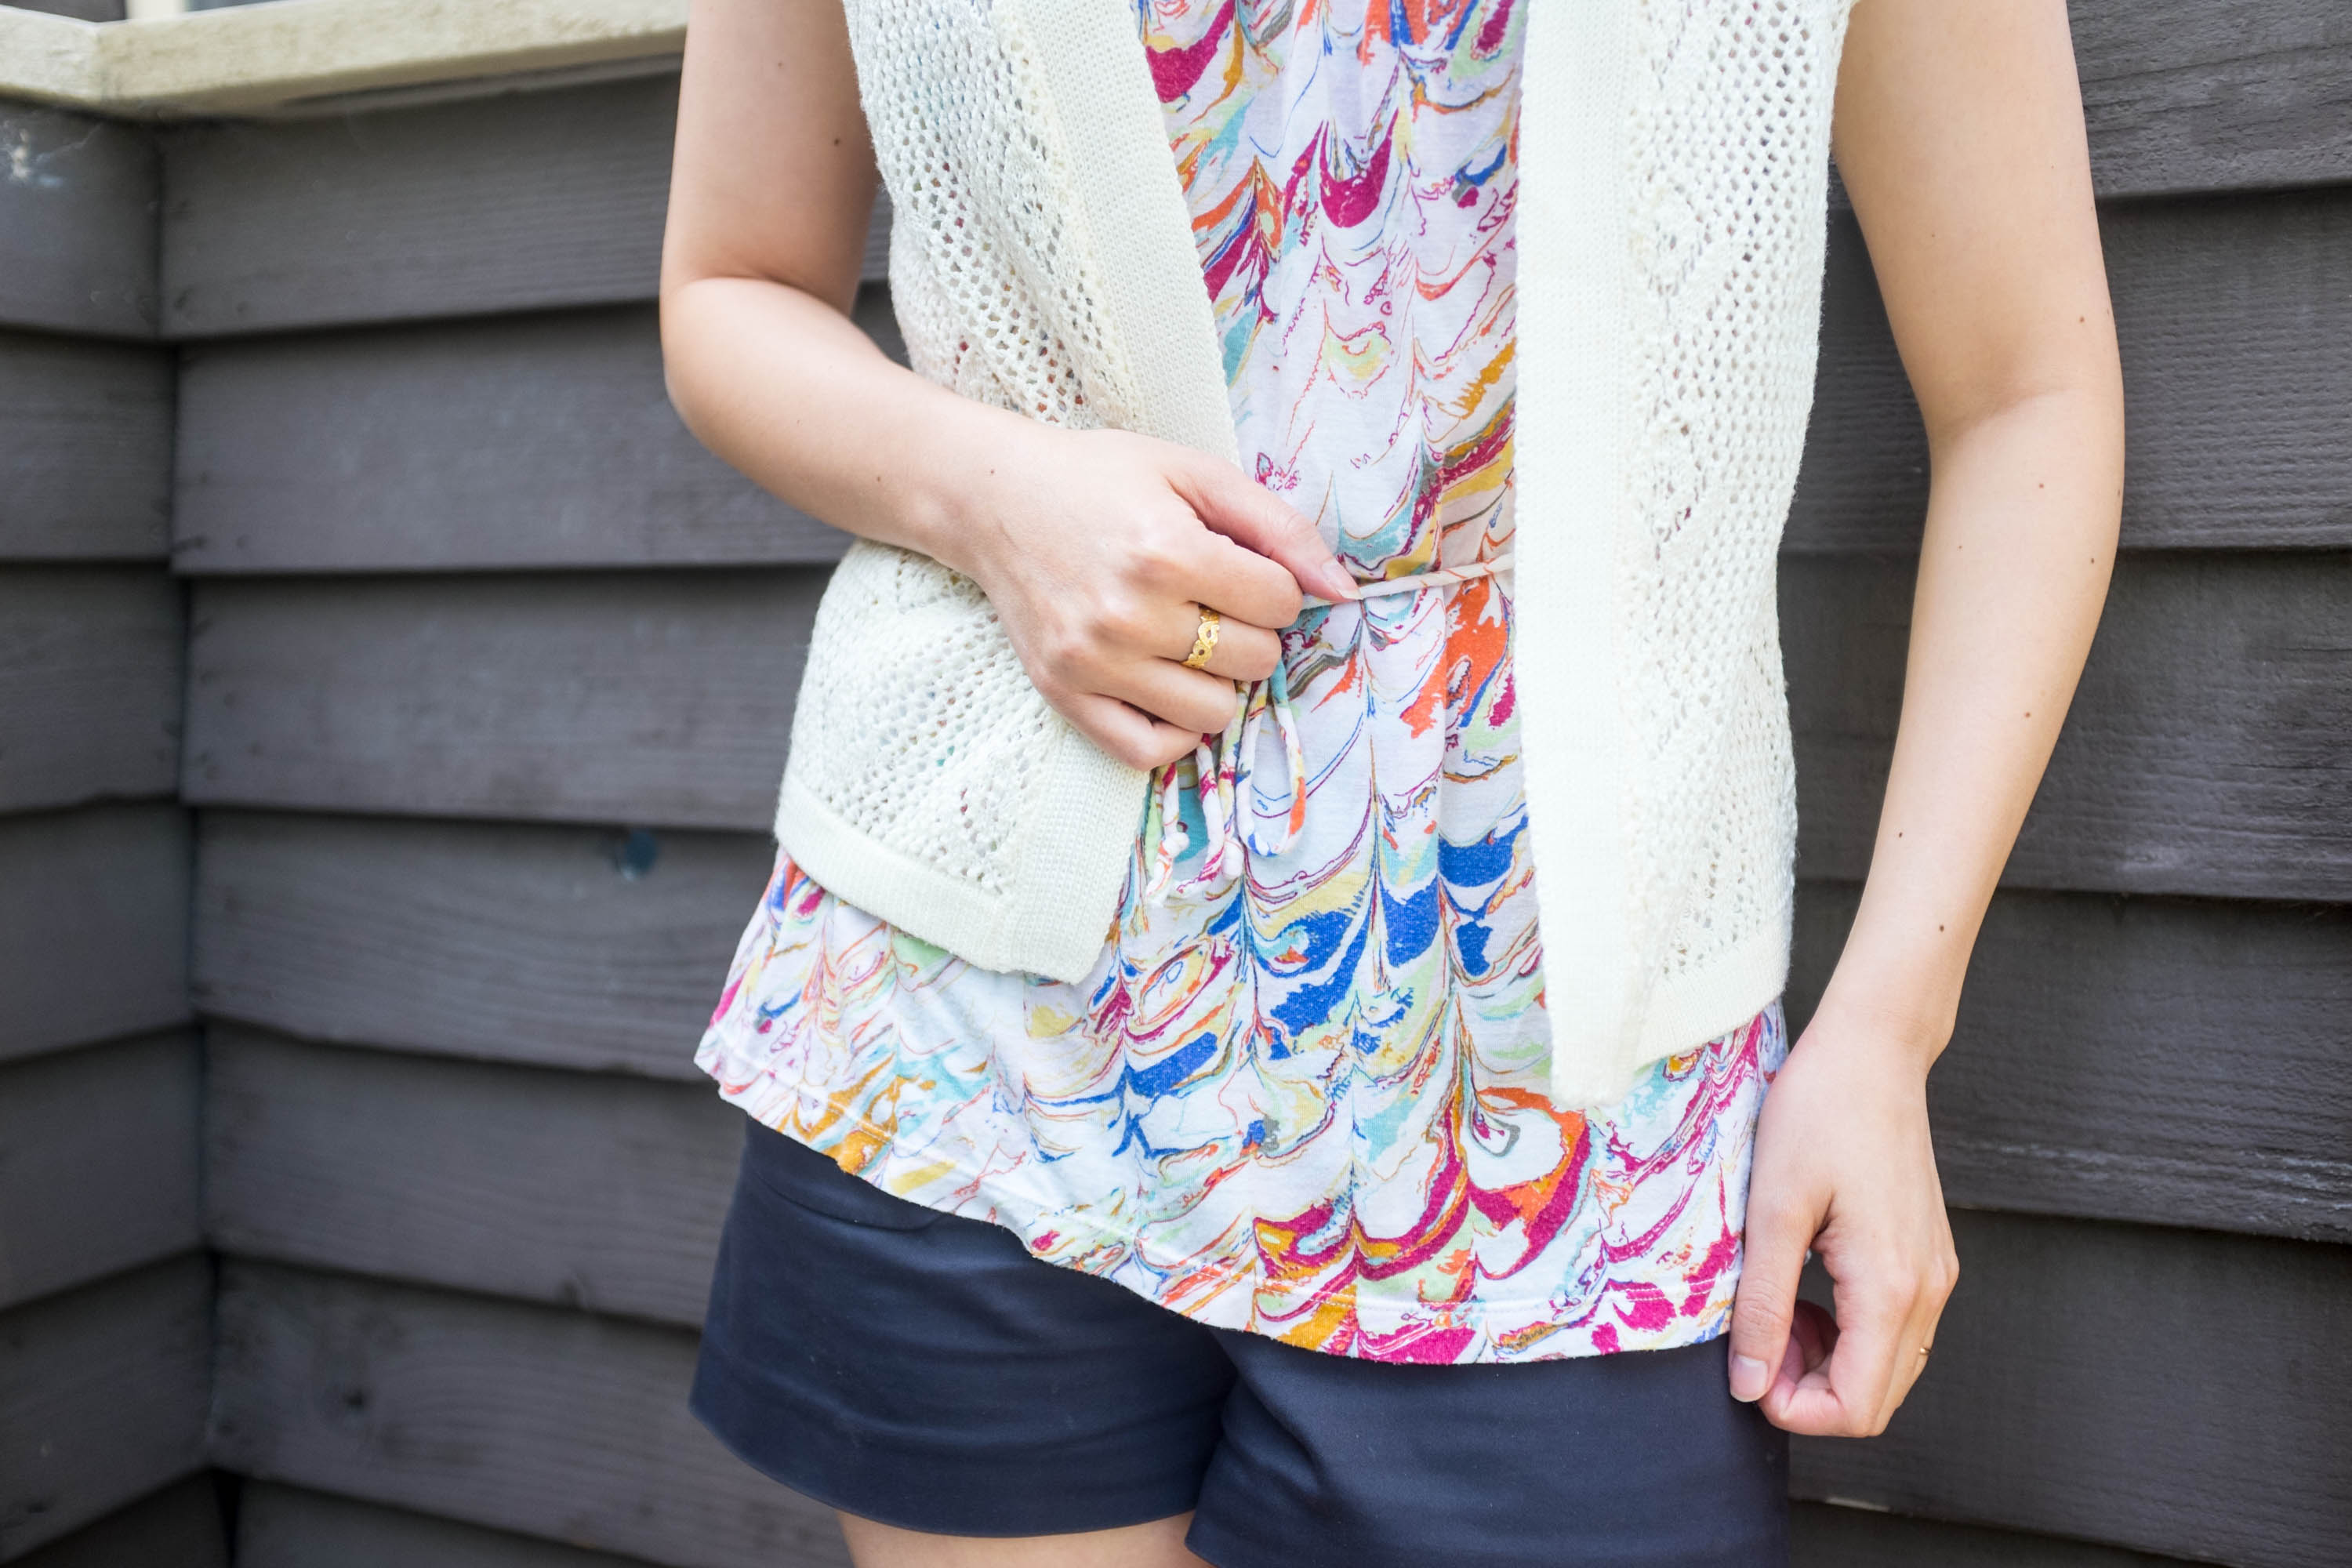 Weekly Capsule: 2 Outfits from my Summer Capsule Wardrobe